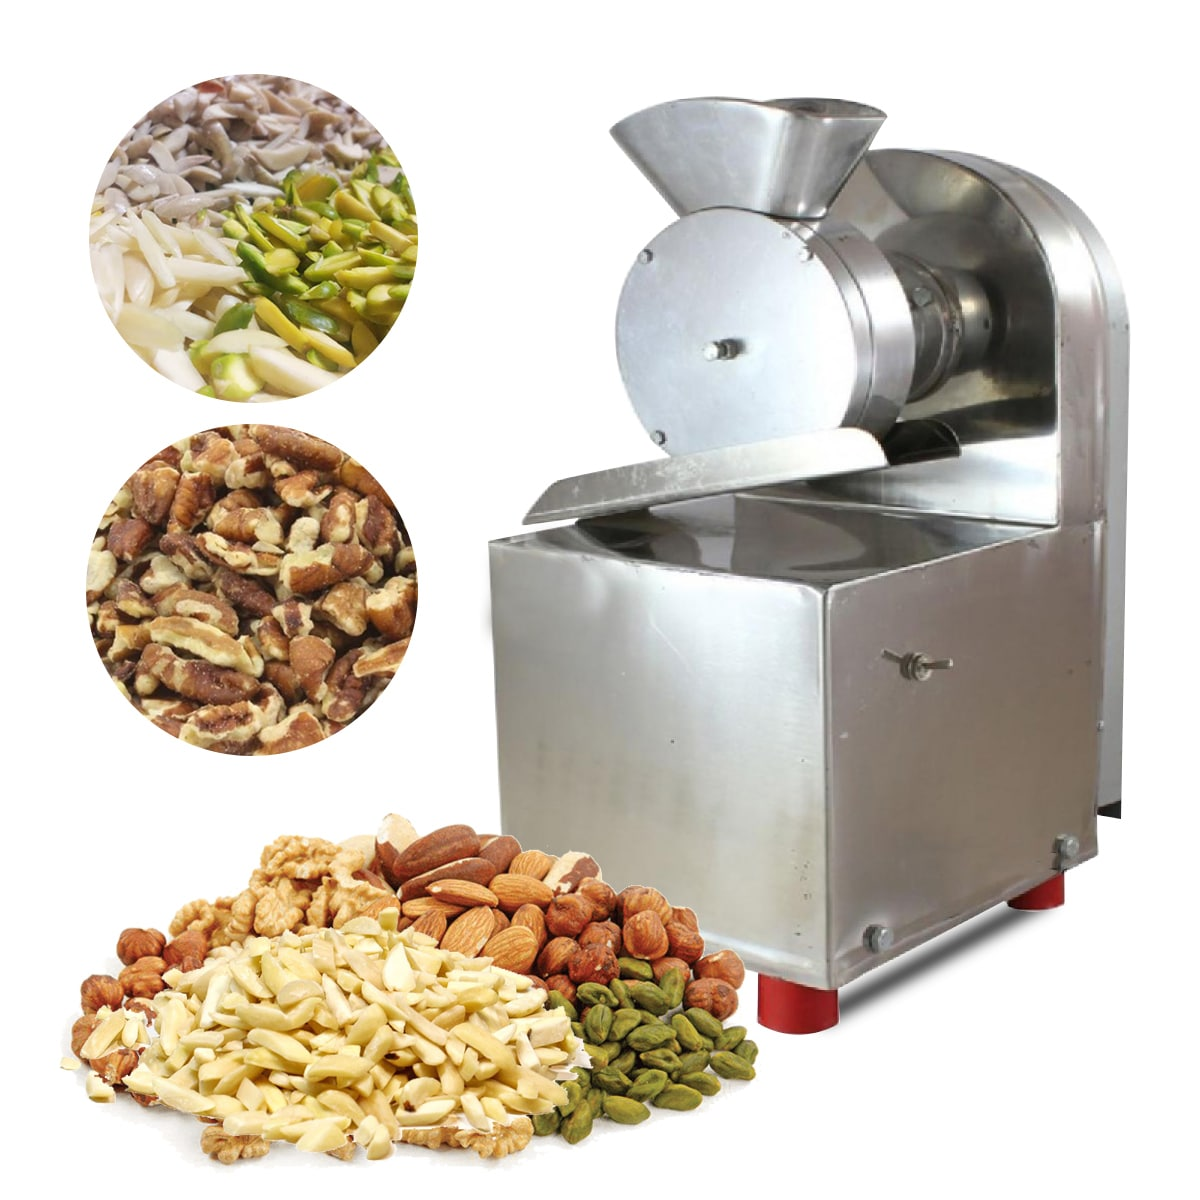 Made in Punjab - Heavy Duty Dry Fruit Cutting Machine with 0.25HP Motor